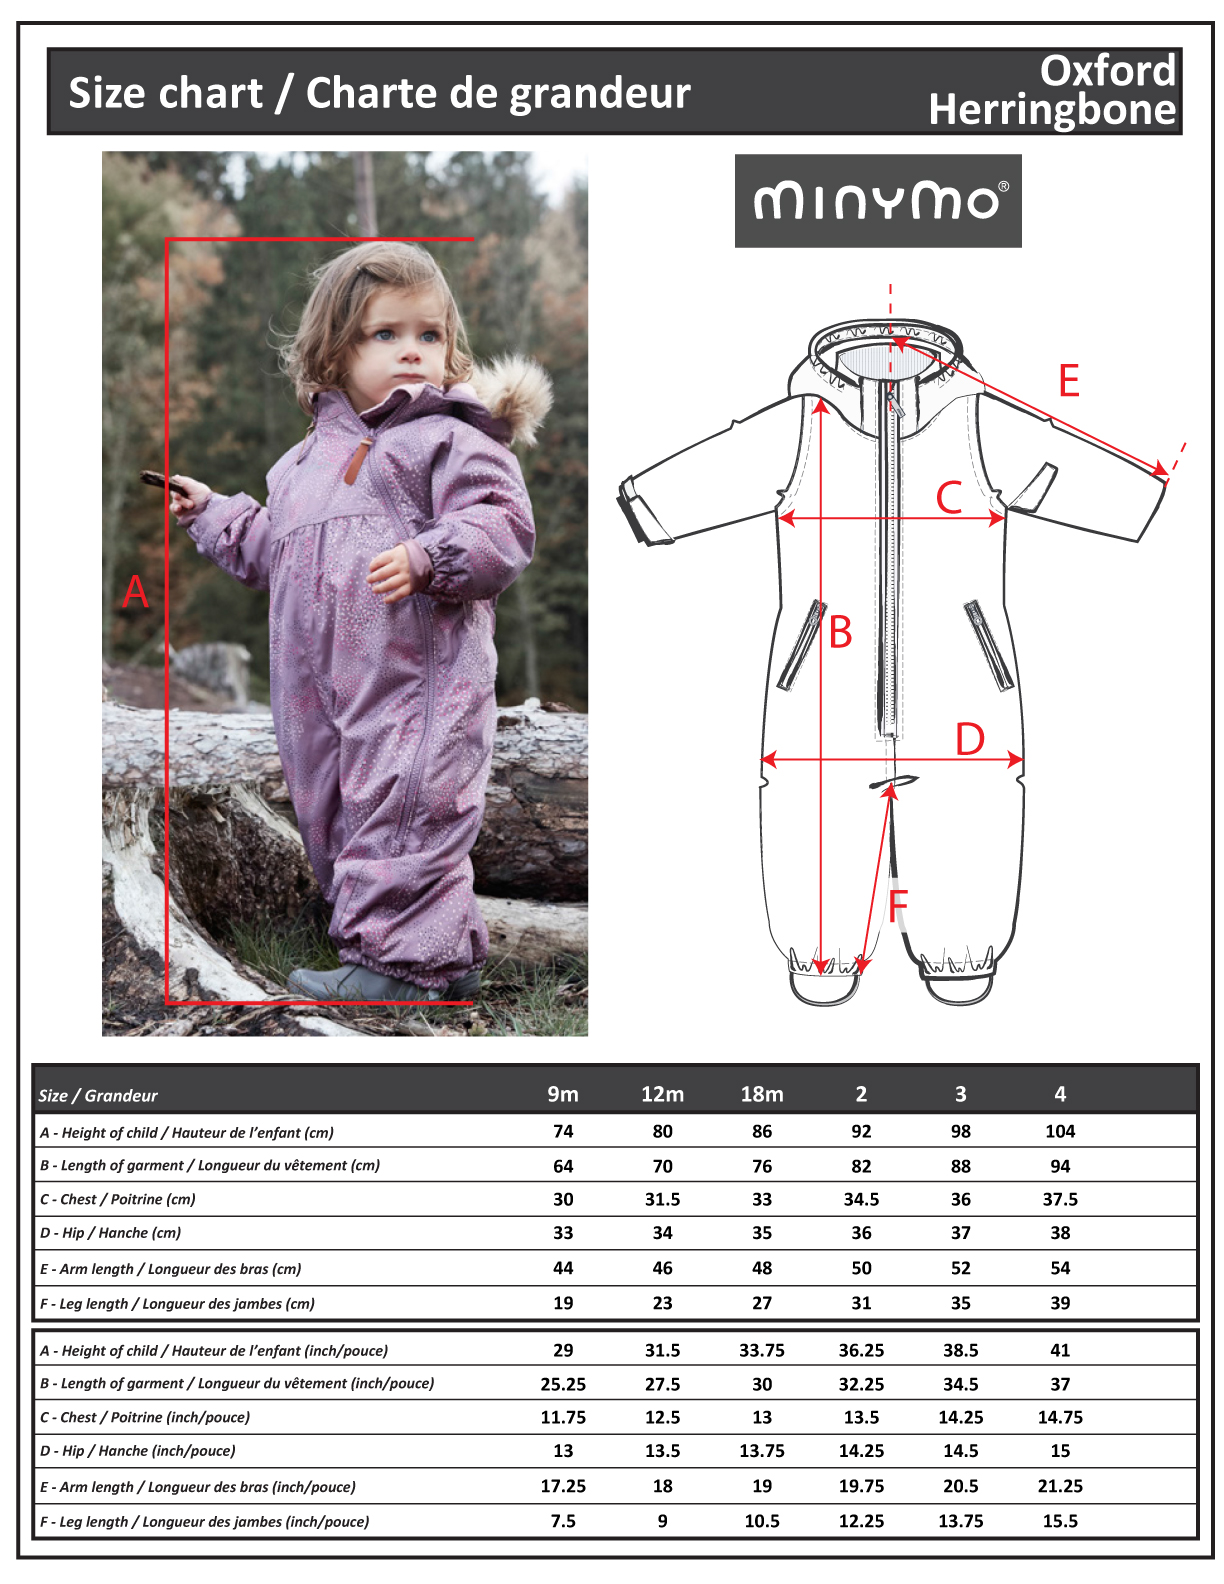 size-chart-minymo-outerwear-herringbone-and-oxford-snow-suit-.png